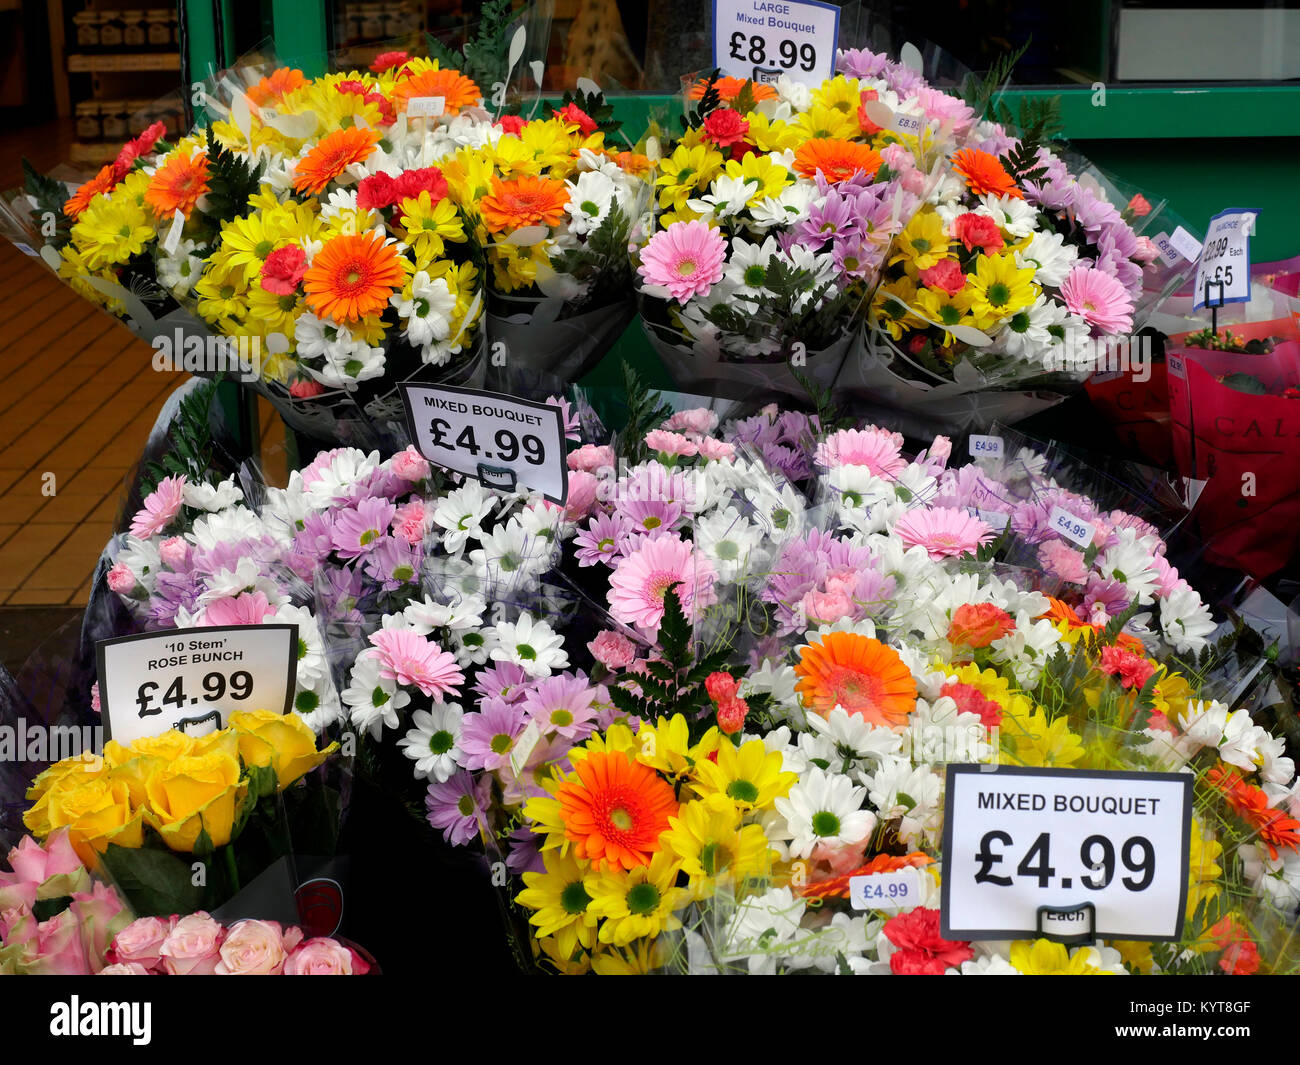 Fresh flowers for sale in High Street, Cosham, Hampshire, England, UK Stock Photo